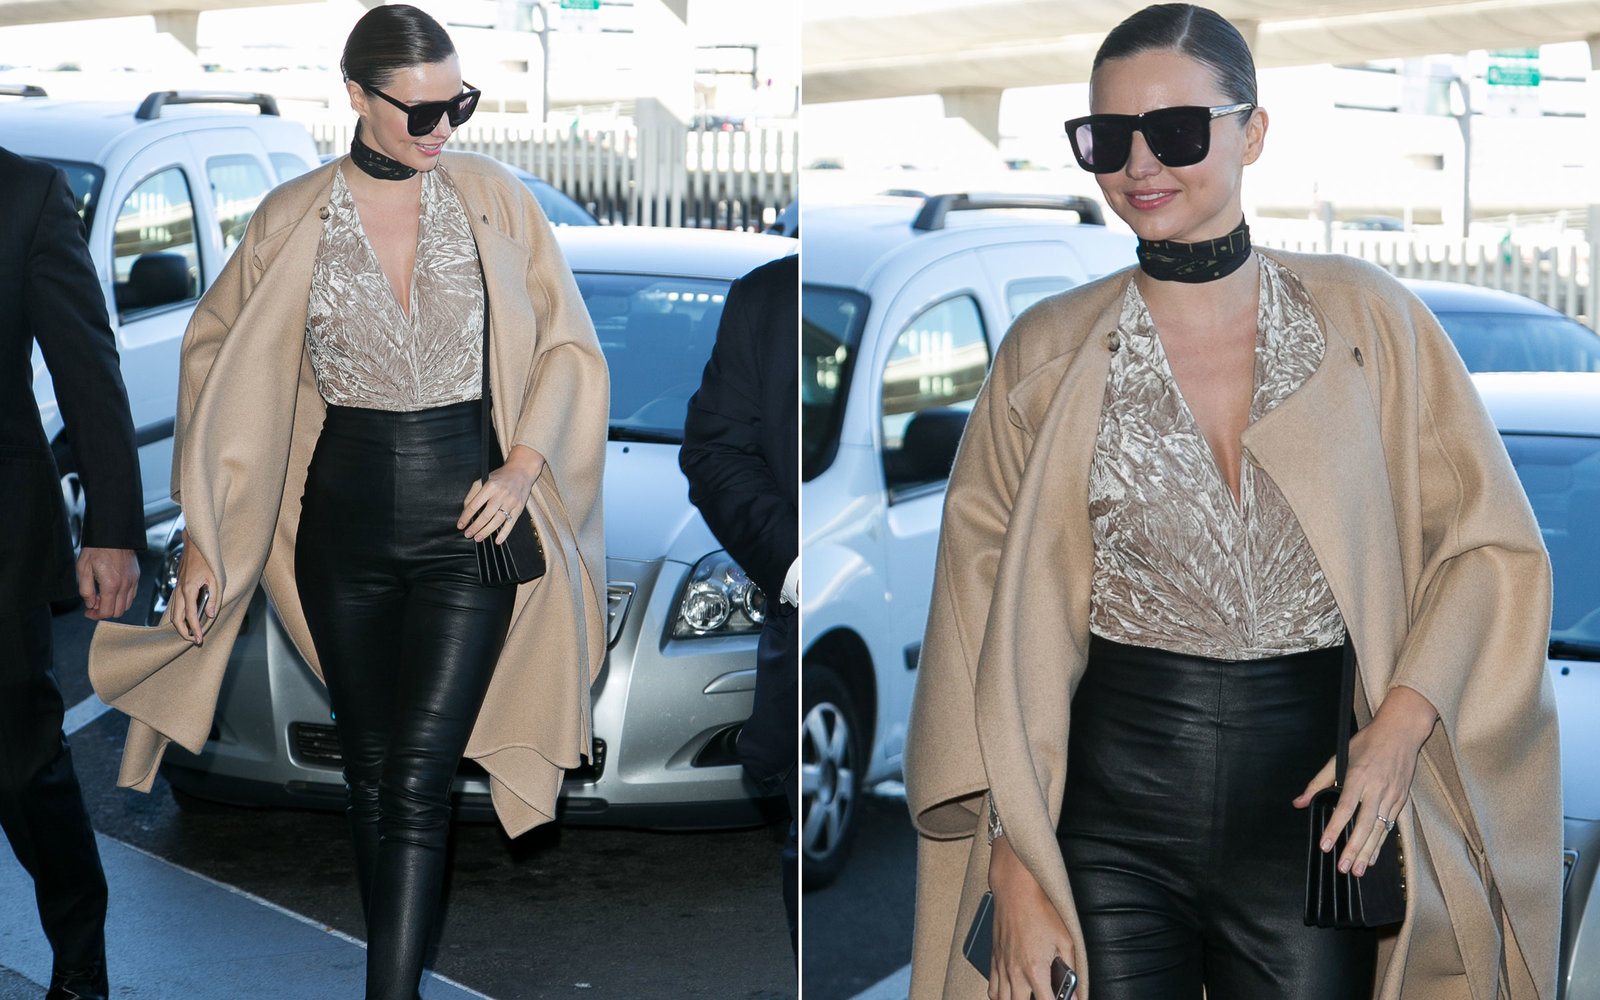 We Re Crushing On The Primitive Country Decor In This City: Shop Miranda Kerr's Airport Style